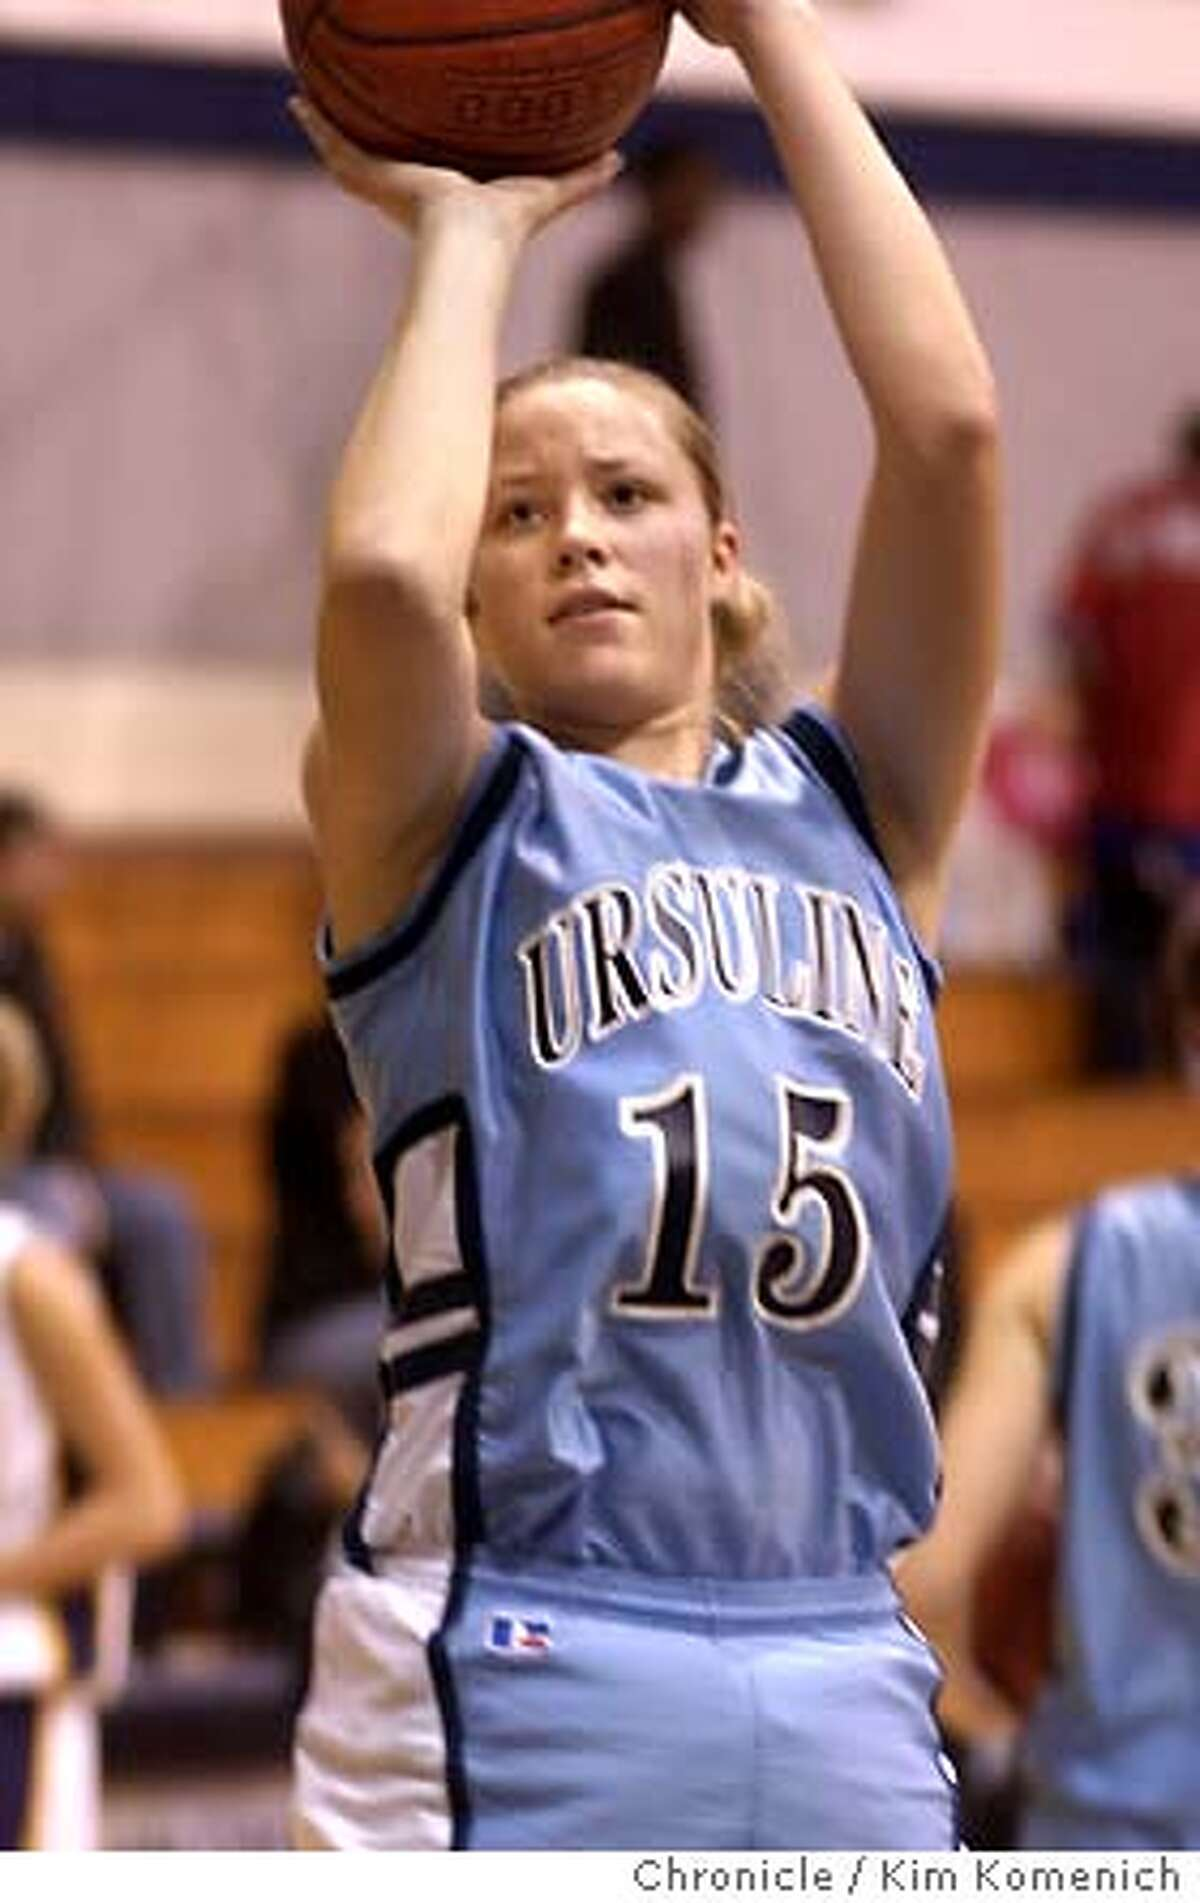 Ursuline High School basketball player Christy Titchenal has just signed with Stanford for next year. She is shown with her team in a game against Ukiah in the Marin Catholic Tournament in Kentfield. KIM KOMENICH/The Chronicle